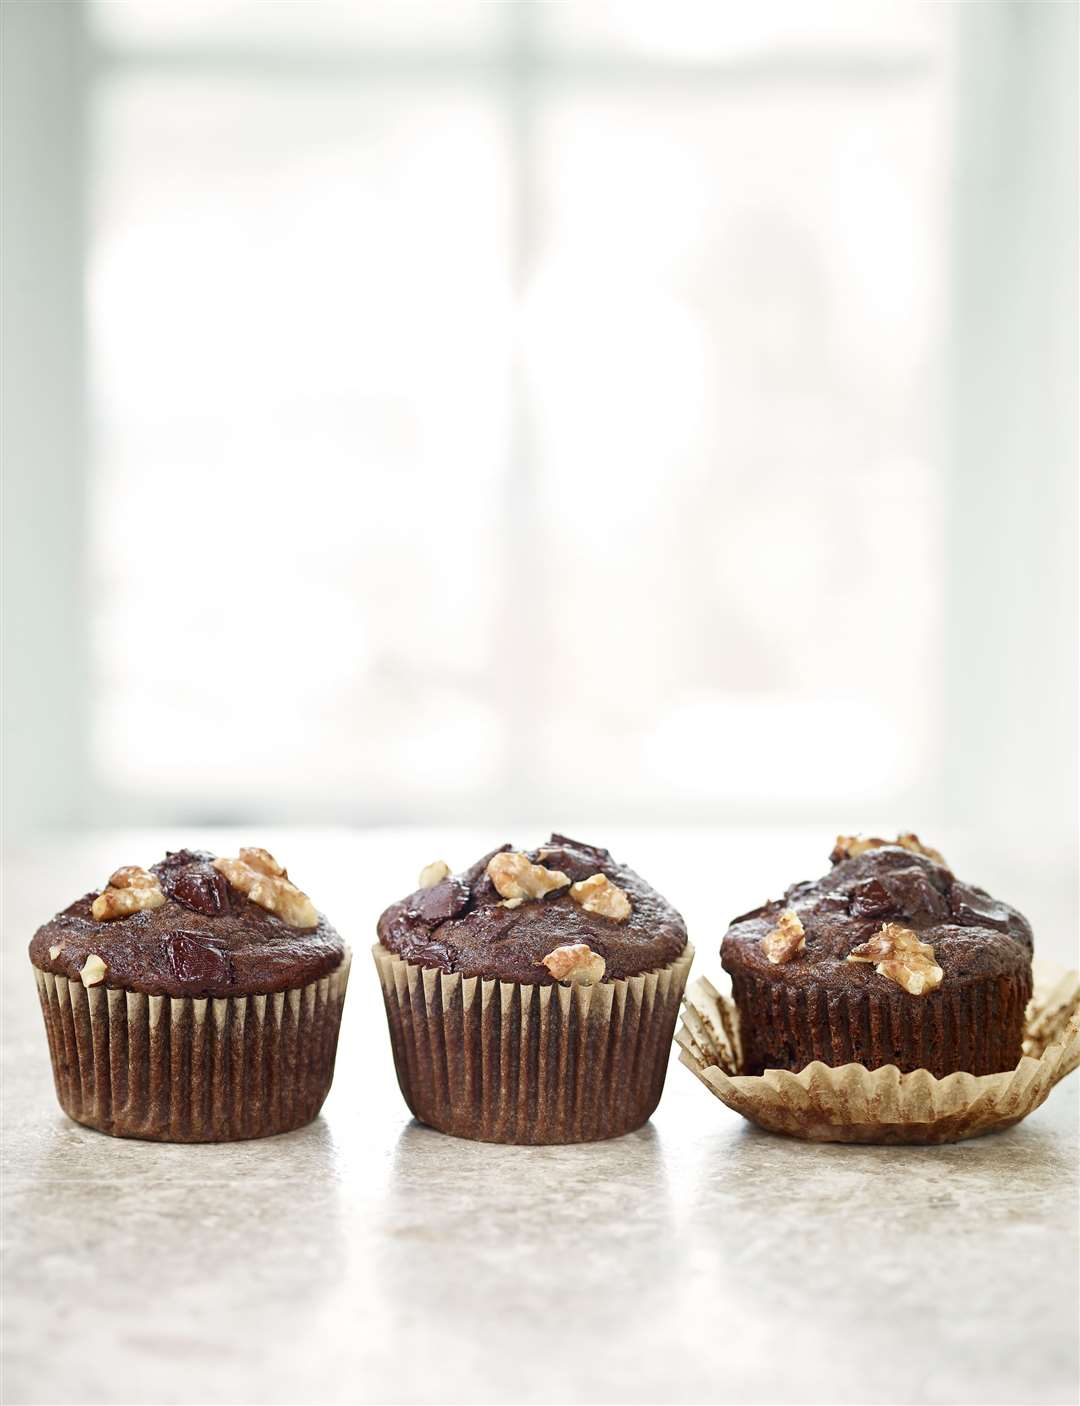 Chocolate banana muffins from Deliciously Ella: Quick & Easy by Ella Mills. Picture: Nassima Rothacker/PA